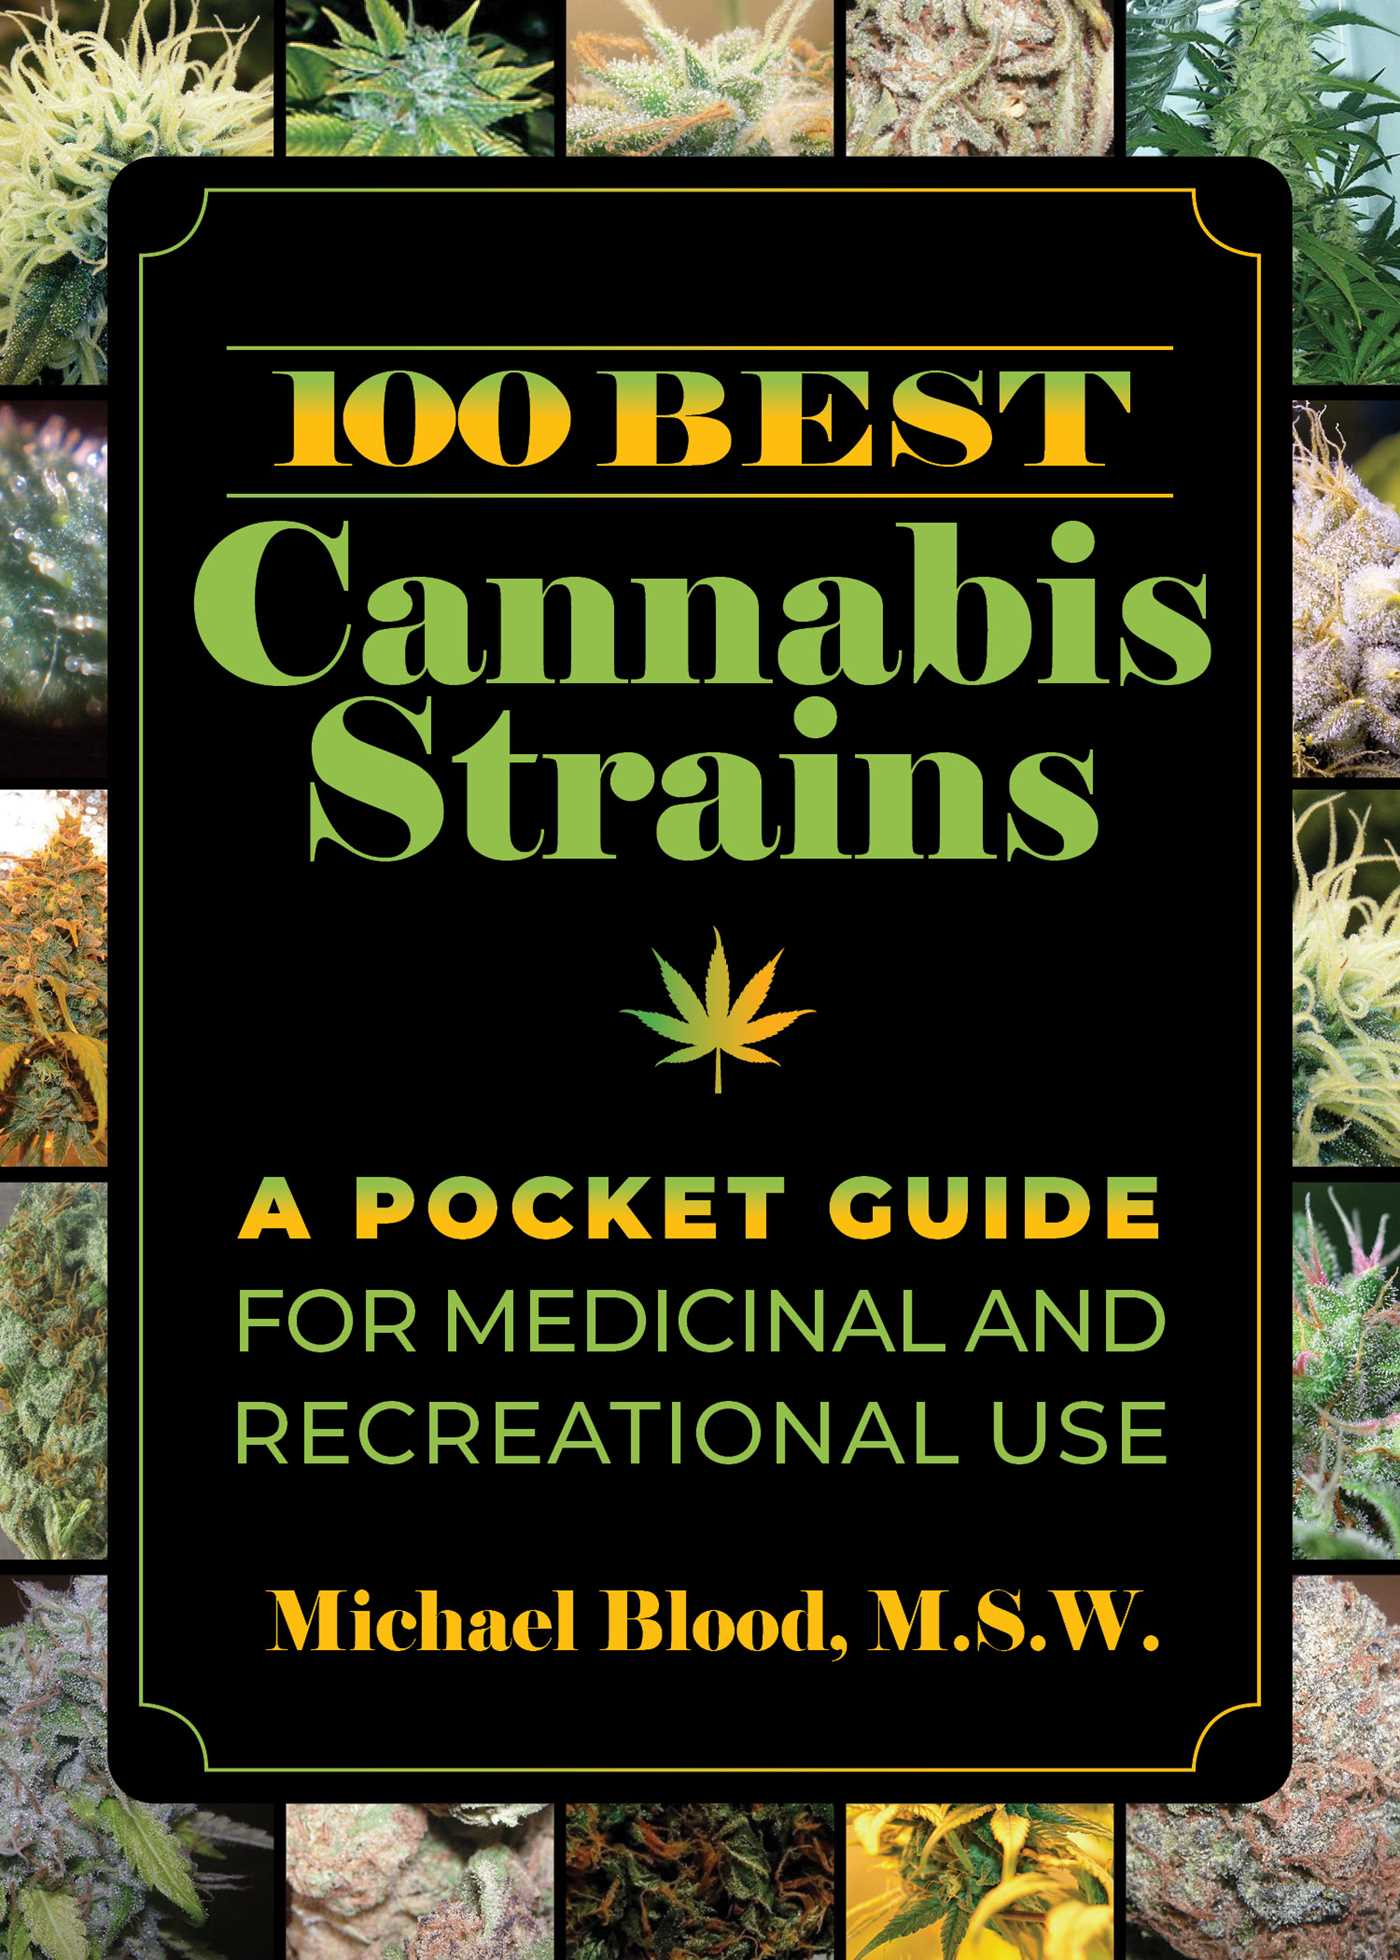 100 Best Cannabis Strains